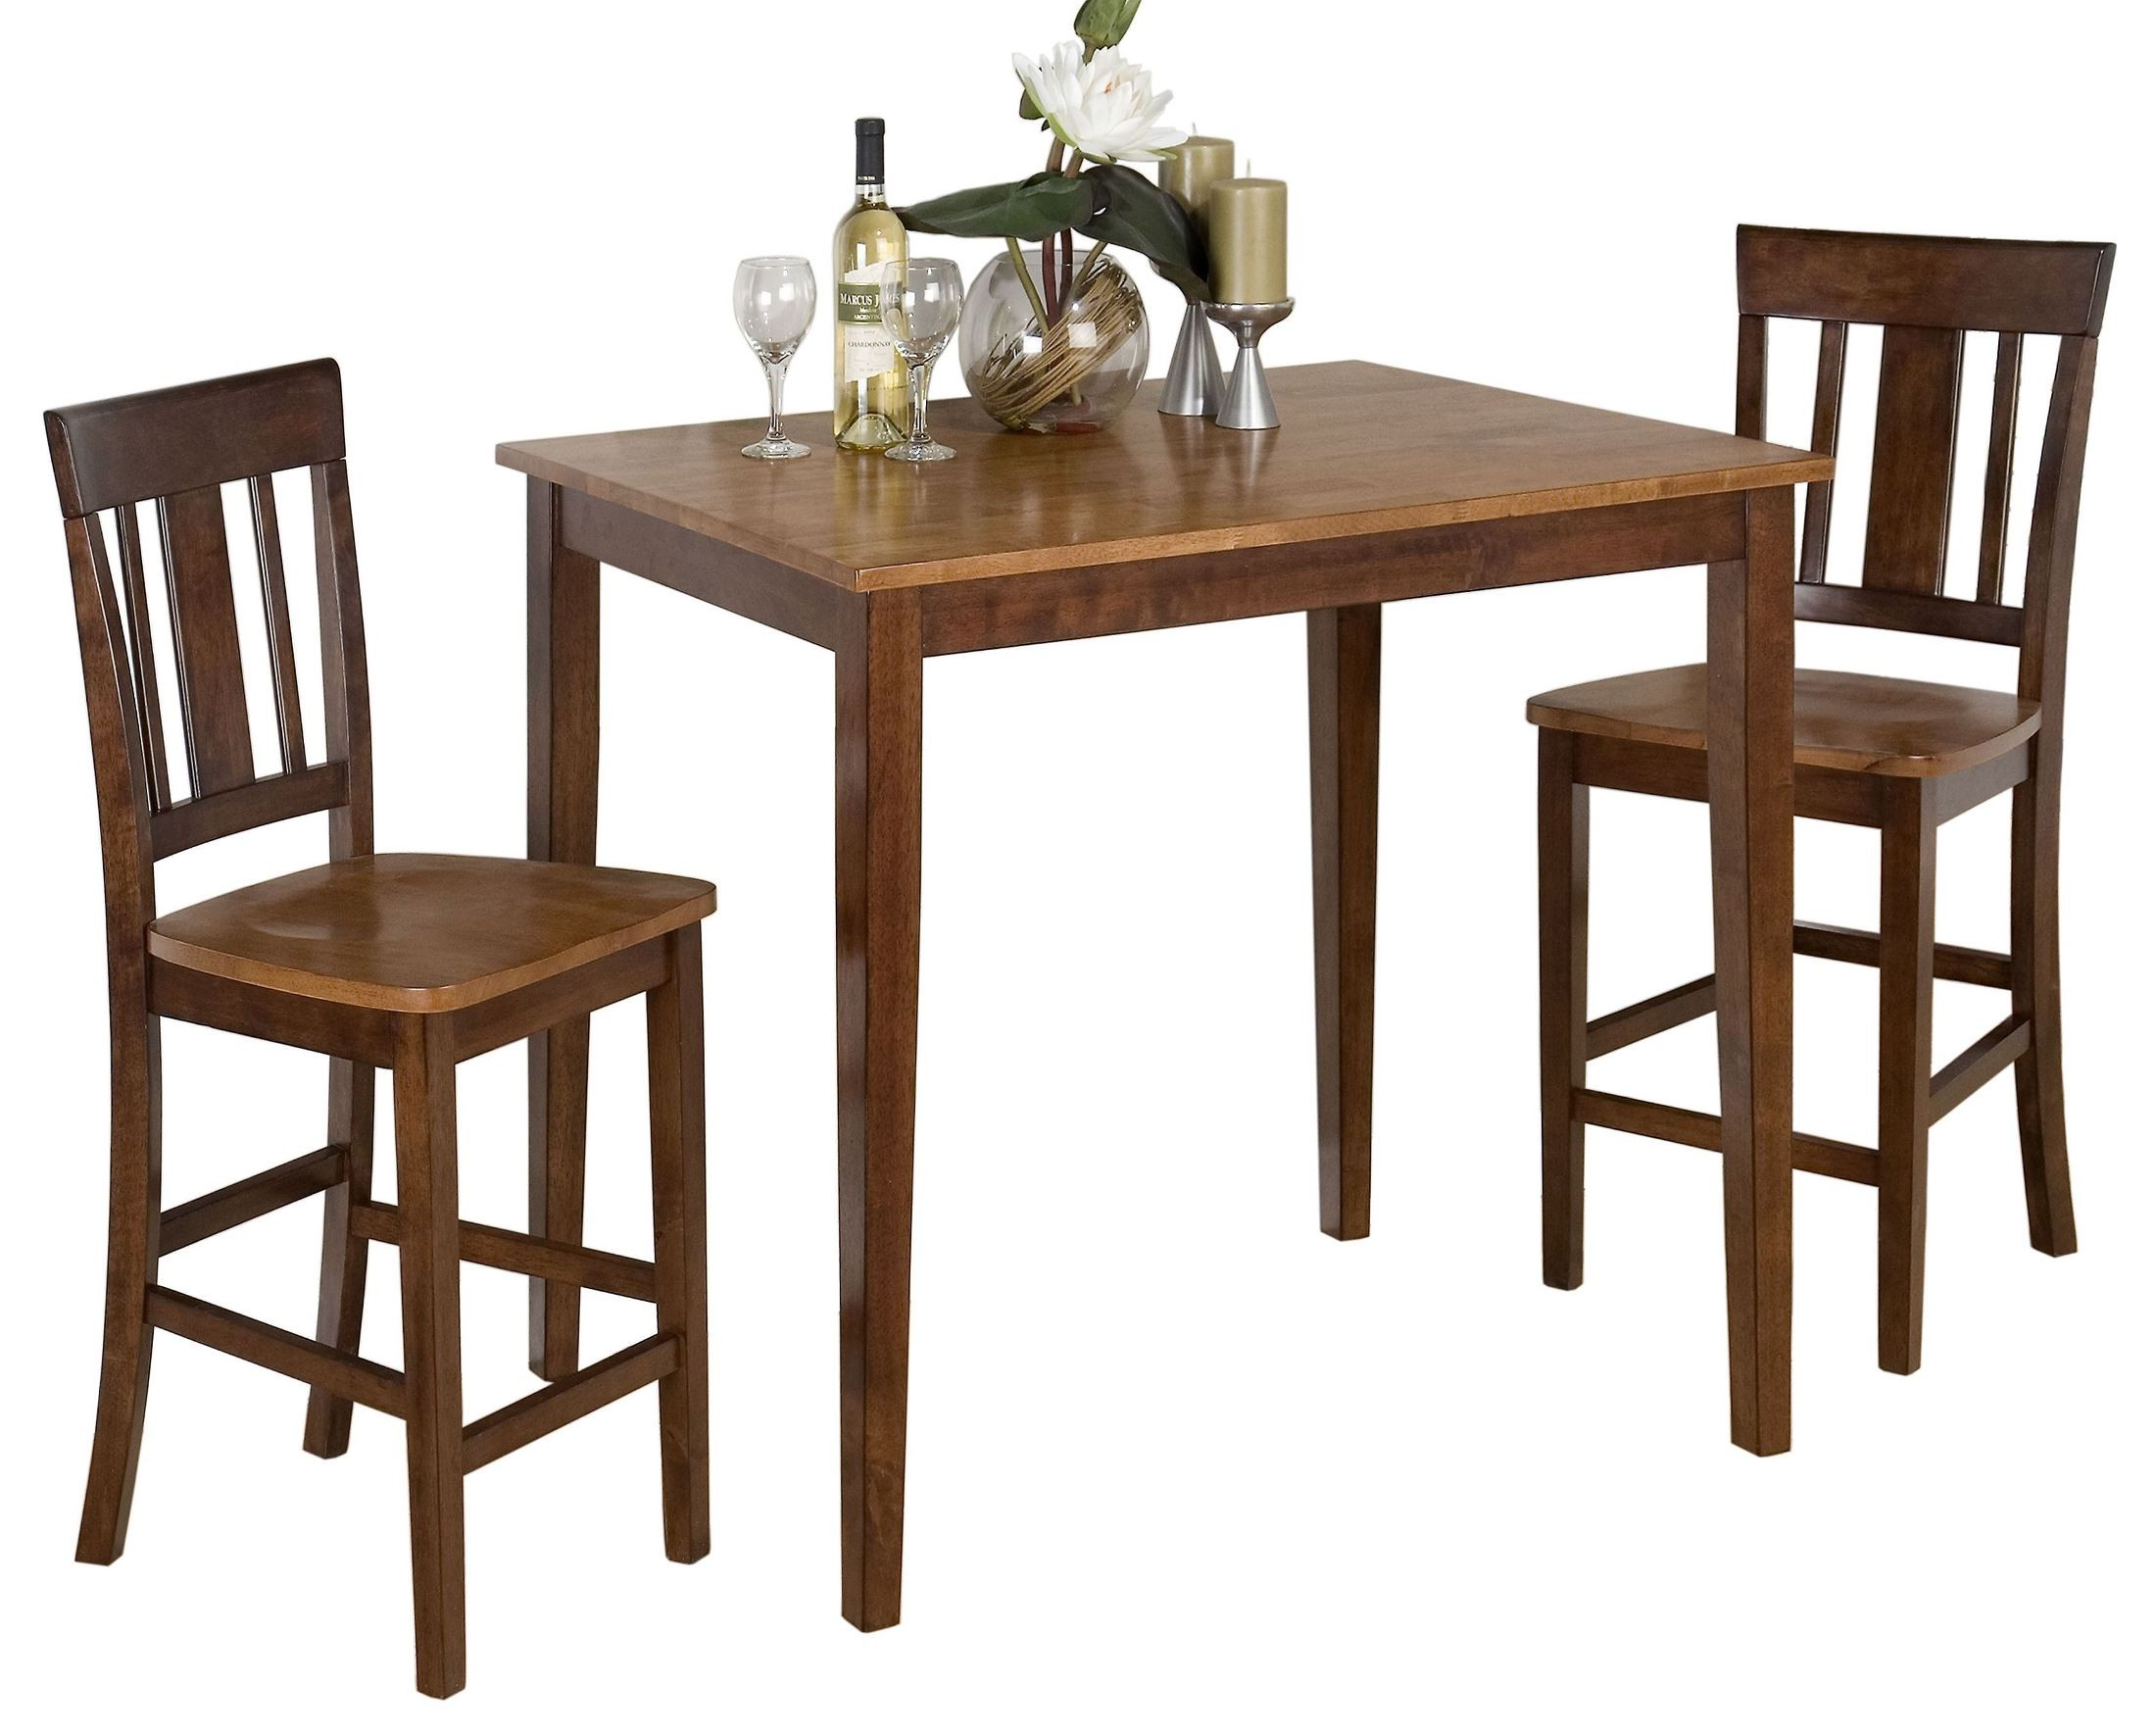 Counter Height Espresso Table : Kura Espresso and Canyon Gold Counter Height Dining Table, 875-30 ...